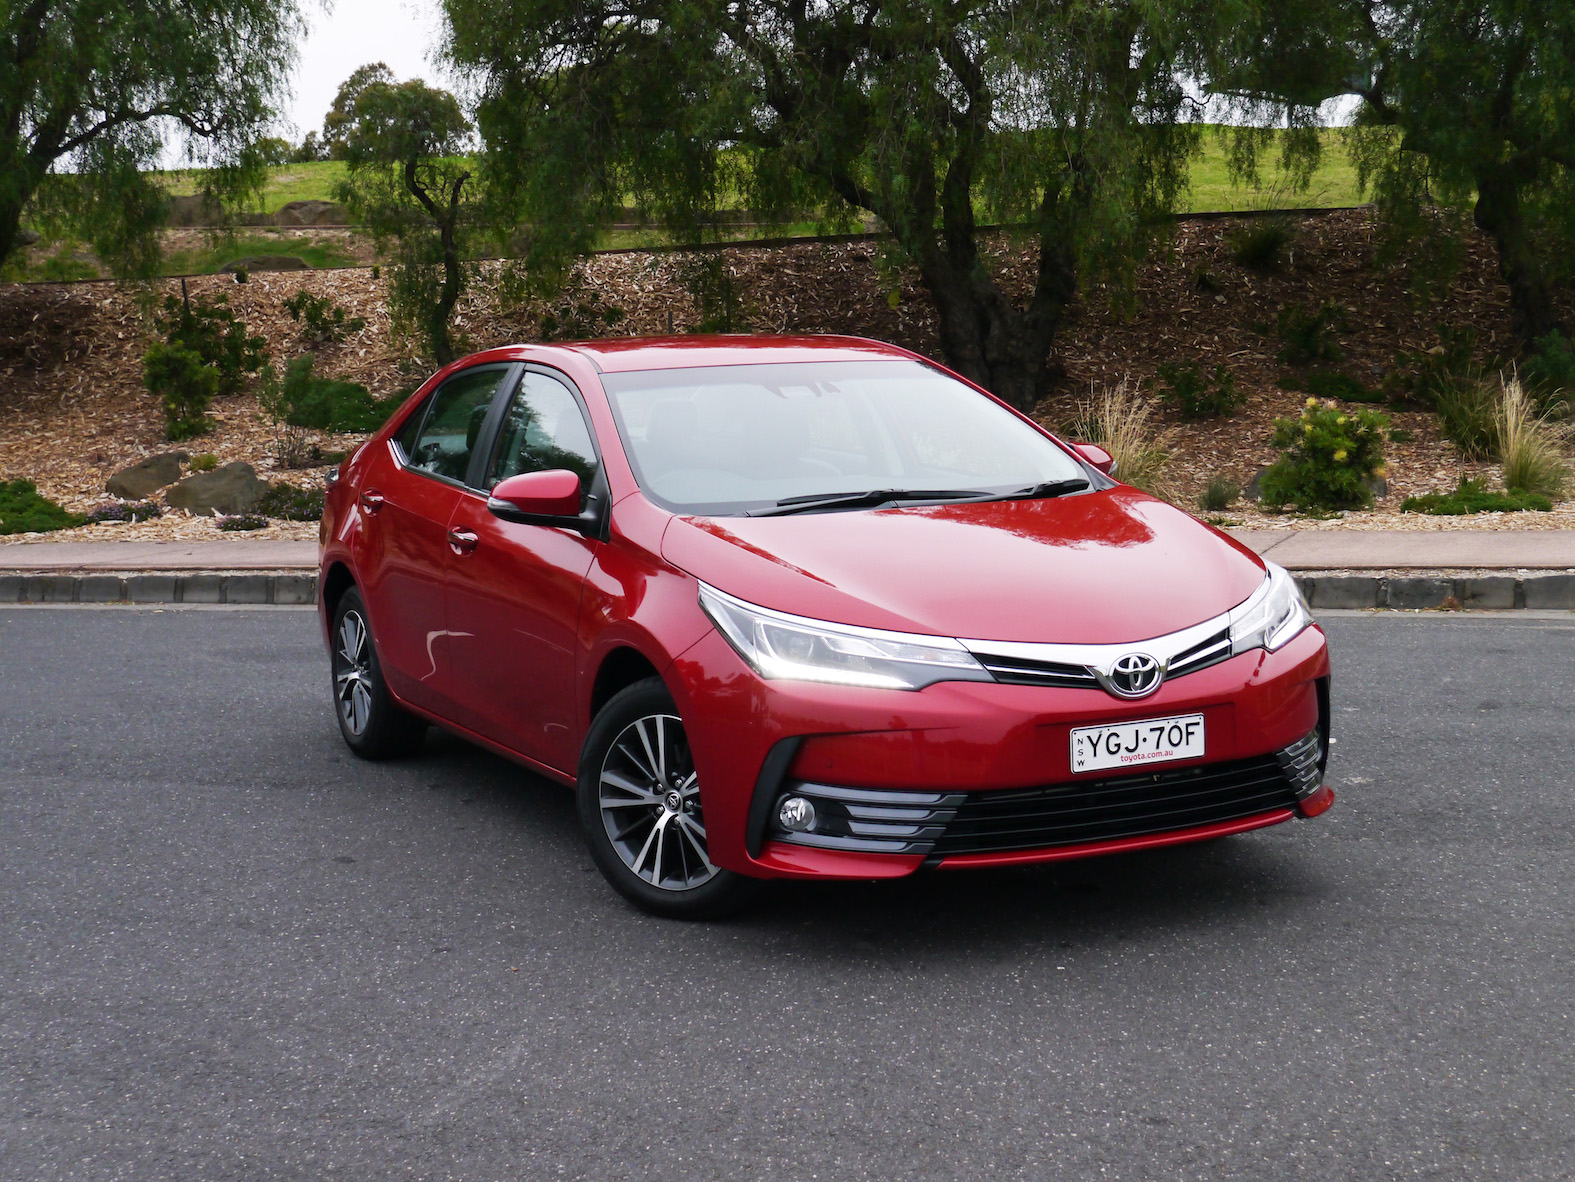 2017 Corolla ZR Sedan Review | Safer, Better Looking, But Falling Behind The Small Car Class